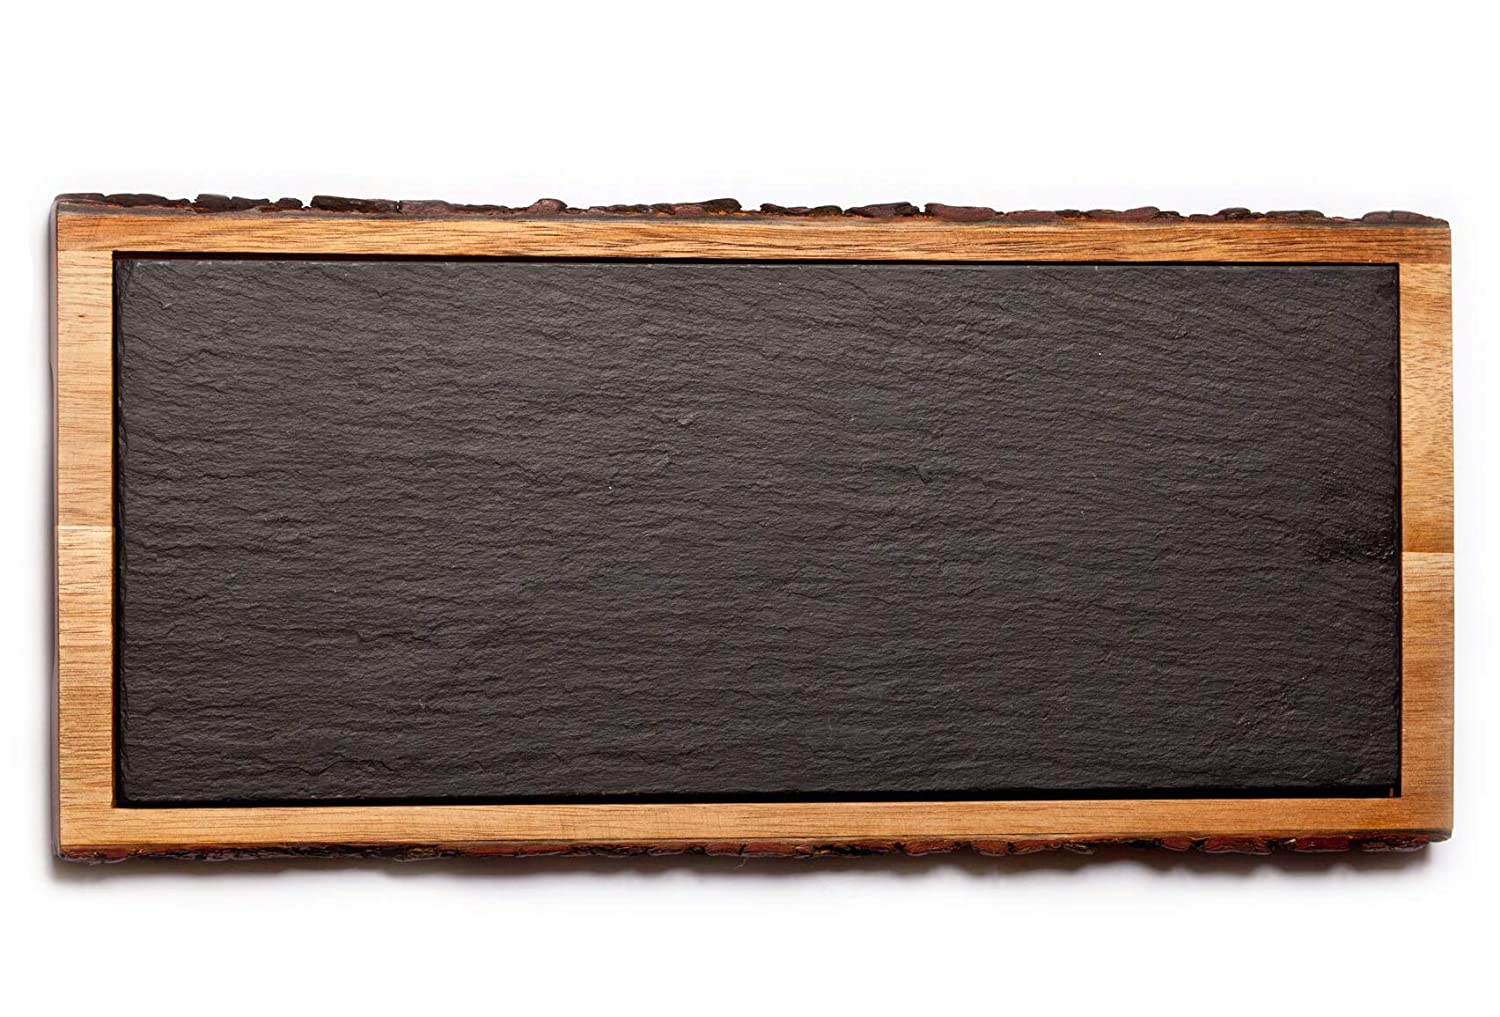 THE CHEF COLLECTION – Plato Borde, Colección Rustic, plato de madera de acacia con pizarra, 37,1x17,0x1,7 cm